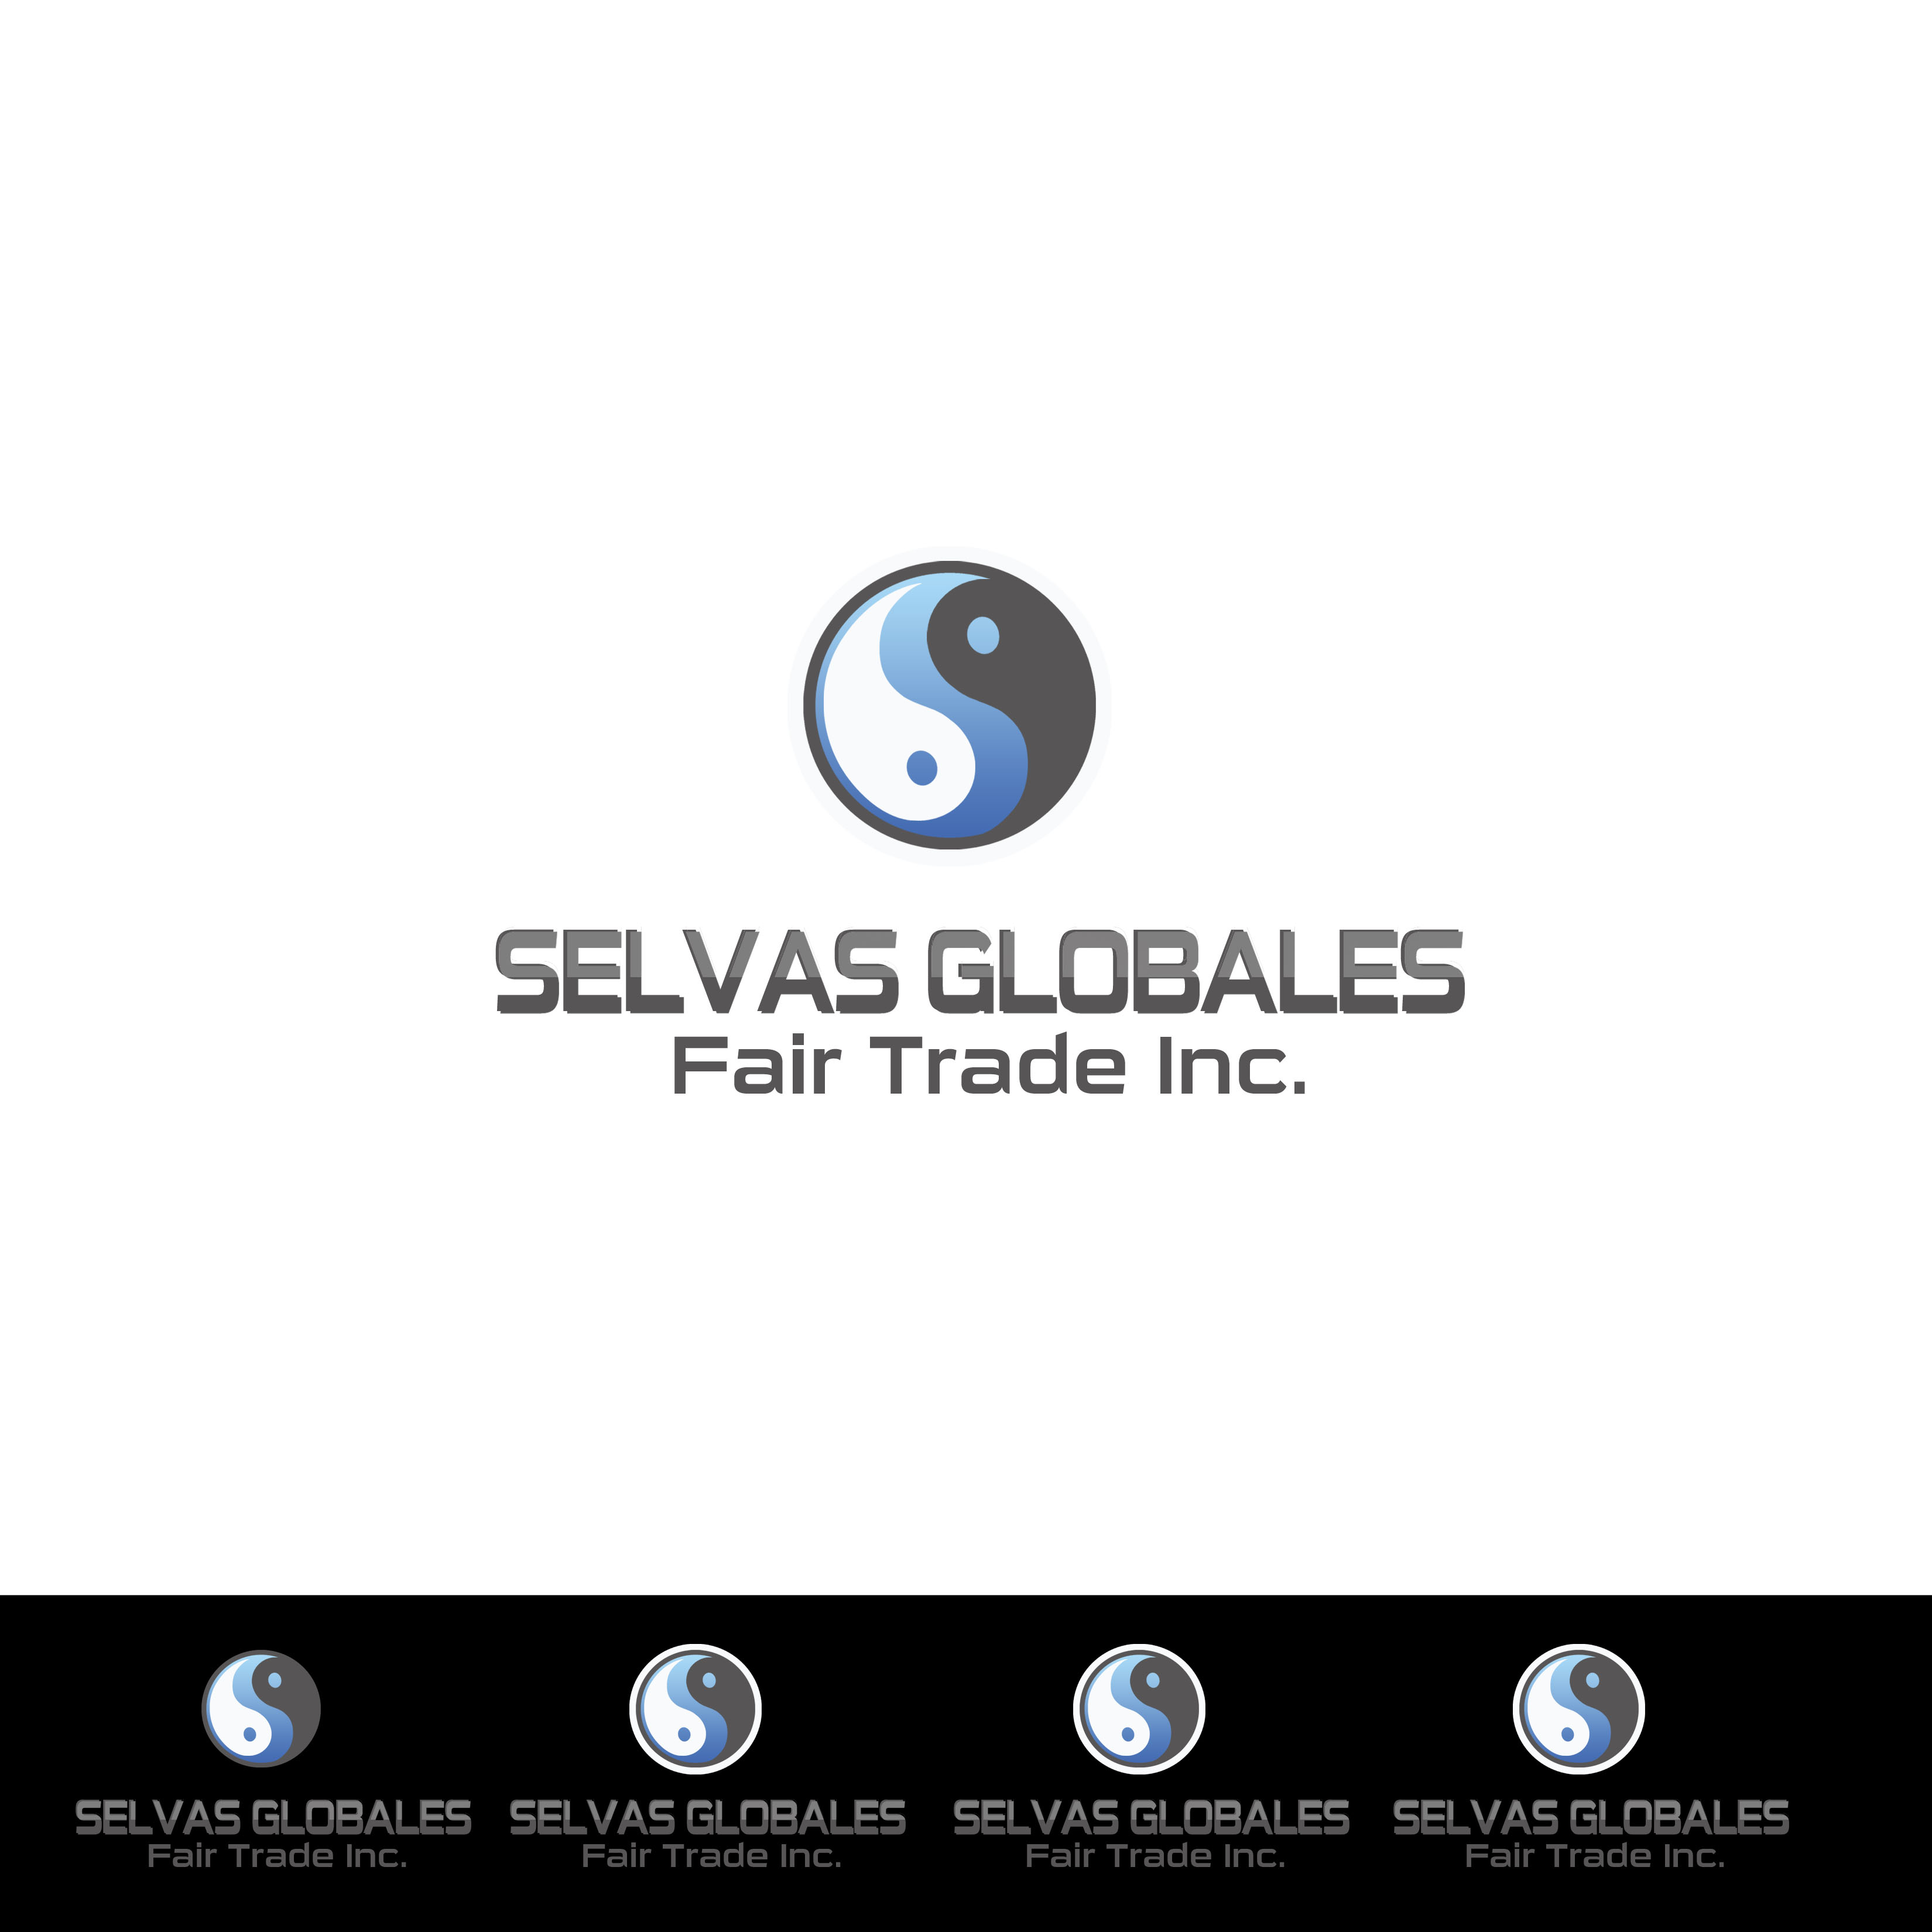 Logo Design by Alan Esclamado - Entry No. 7 in the Logo Design Contest Captivating Logo Design for Selvas Globales Fair Trade Inc..